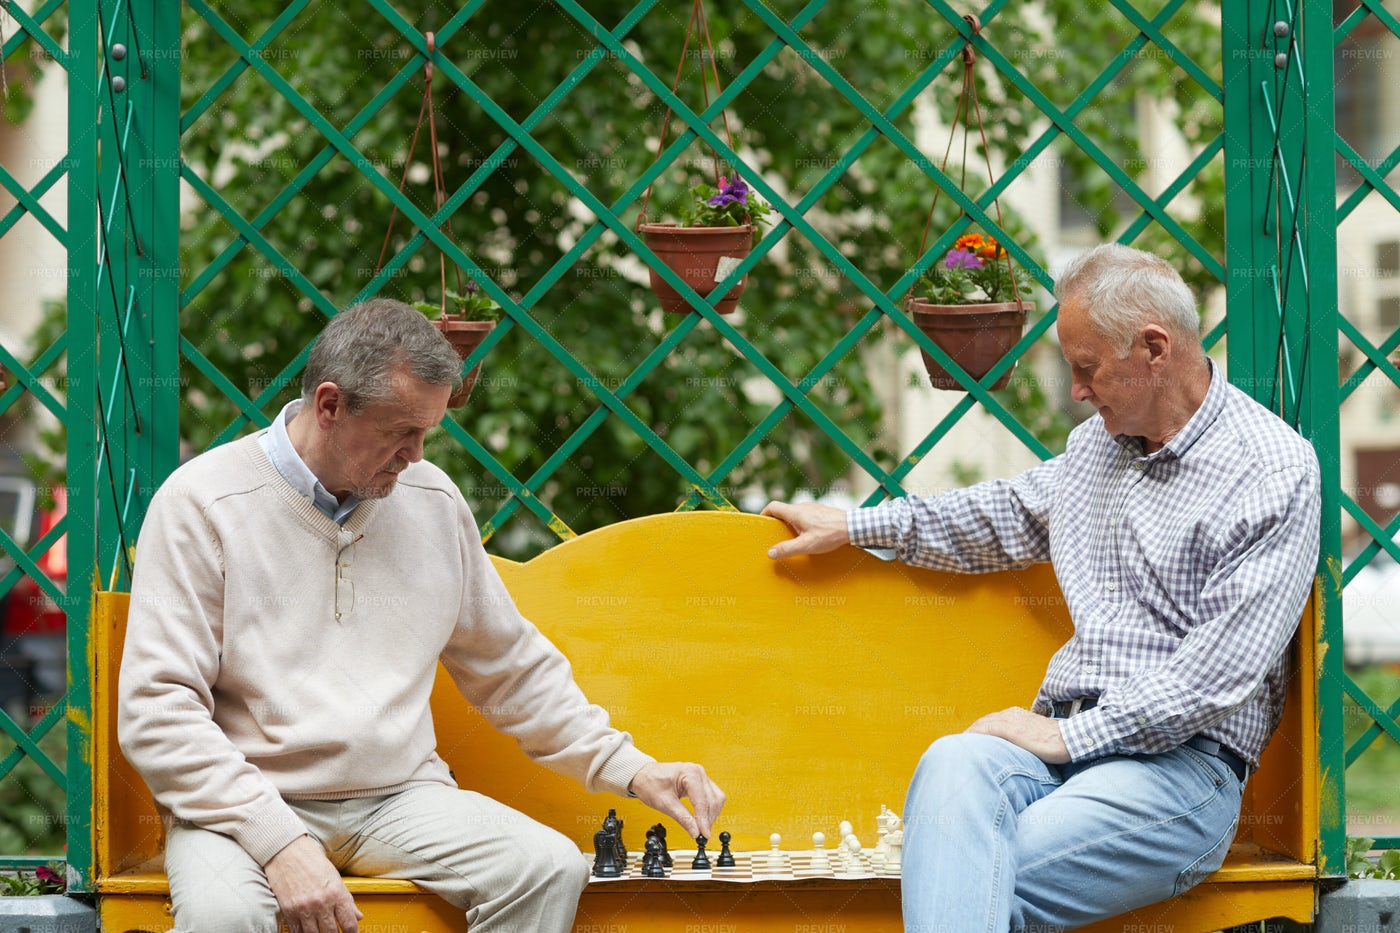 Playing Chess In Garden: Stock Photos